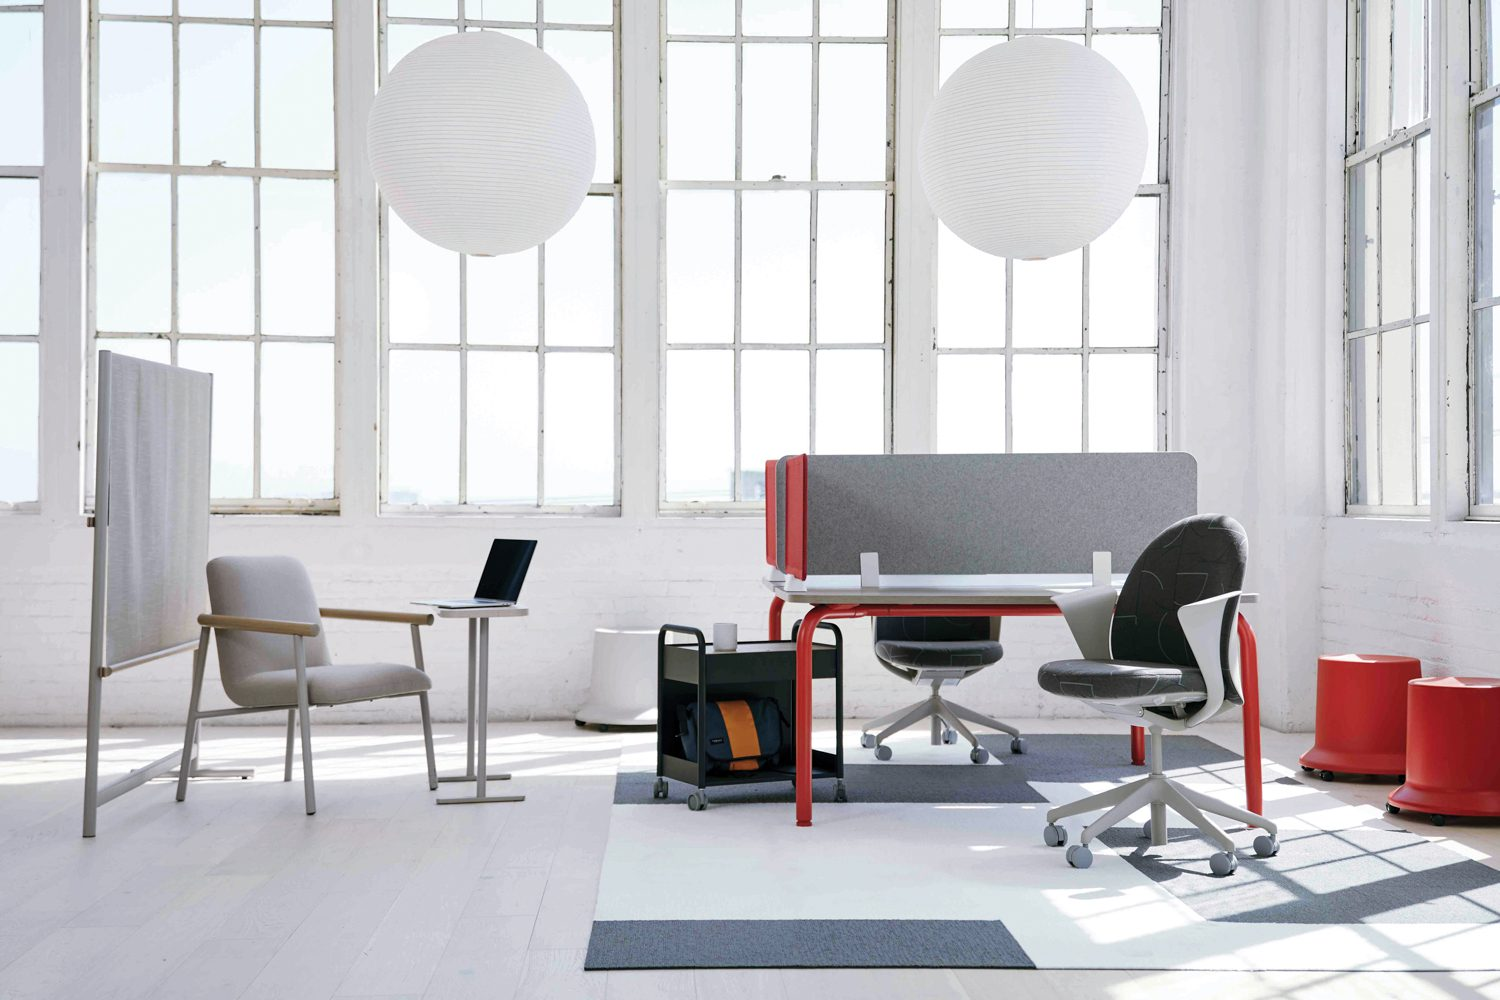 A bright office space making use of two red stools and a gray screen divider.